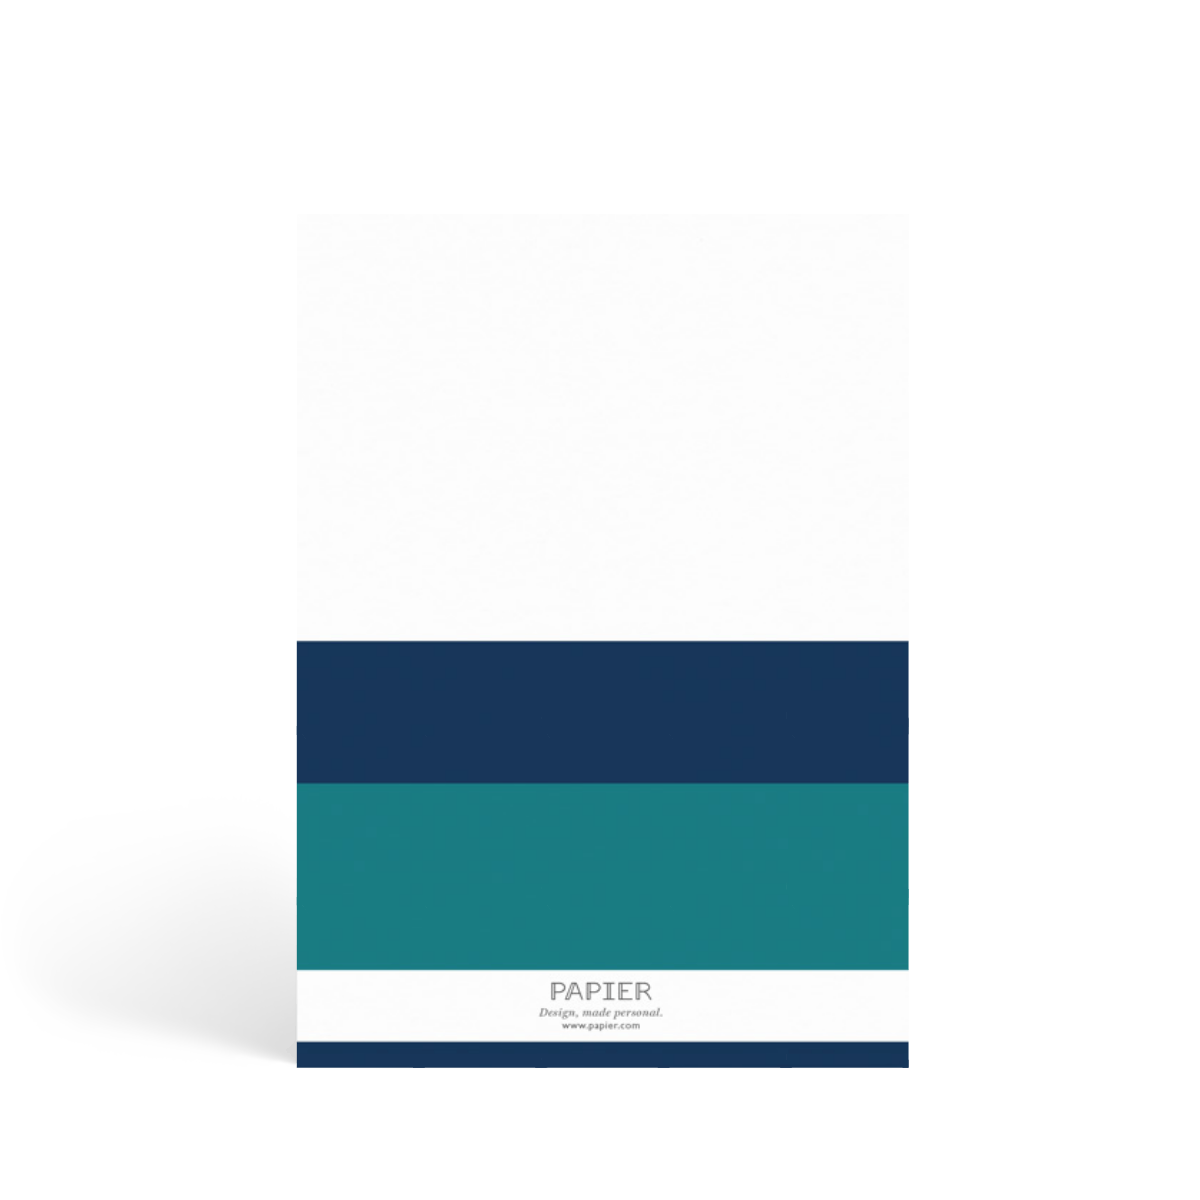 Https%3a%2f%2fwww.papier.com%2fproduct image%2f51786%2f5%2fstriped colourblock 12667 arriere 1540990747.png?ixlib=rb 1.1